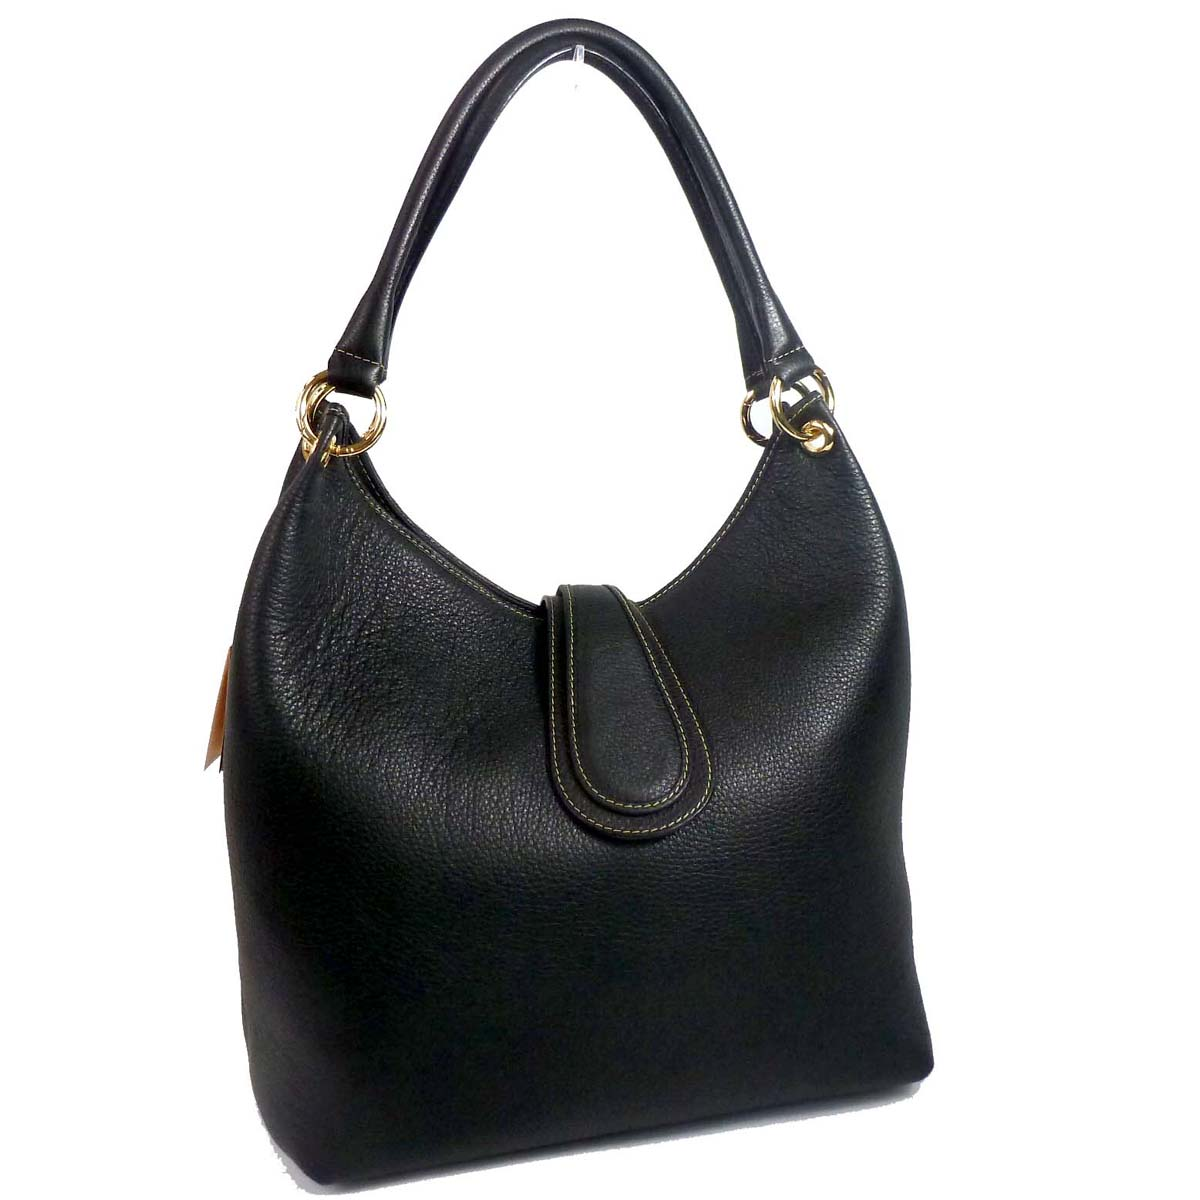 12603 large satchel by Bottega Fiorentina